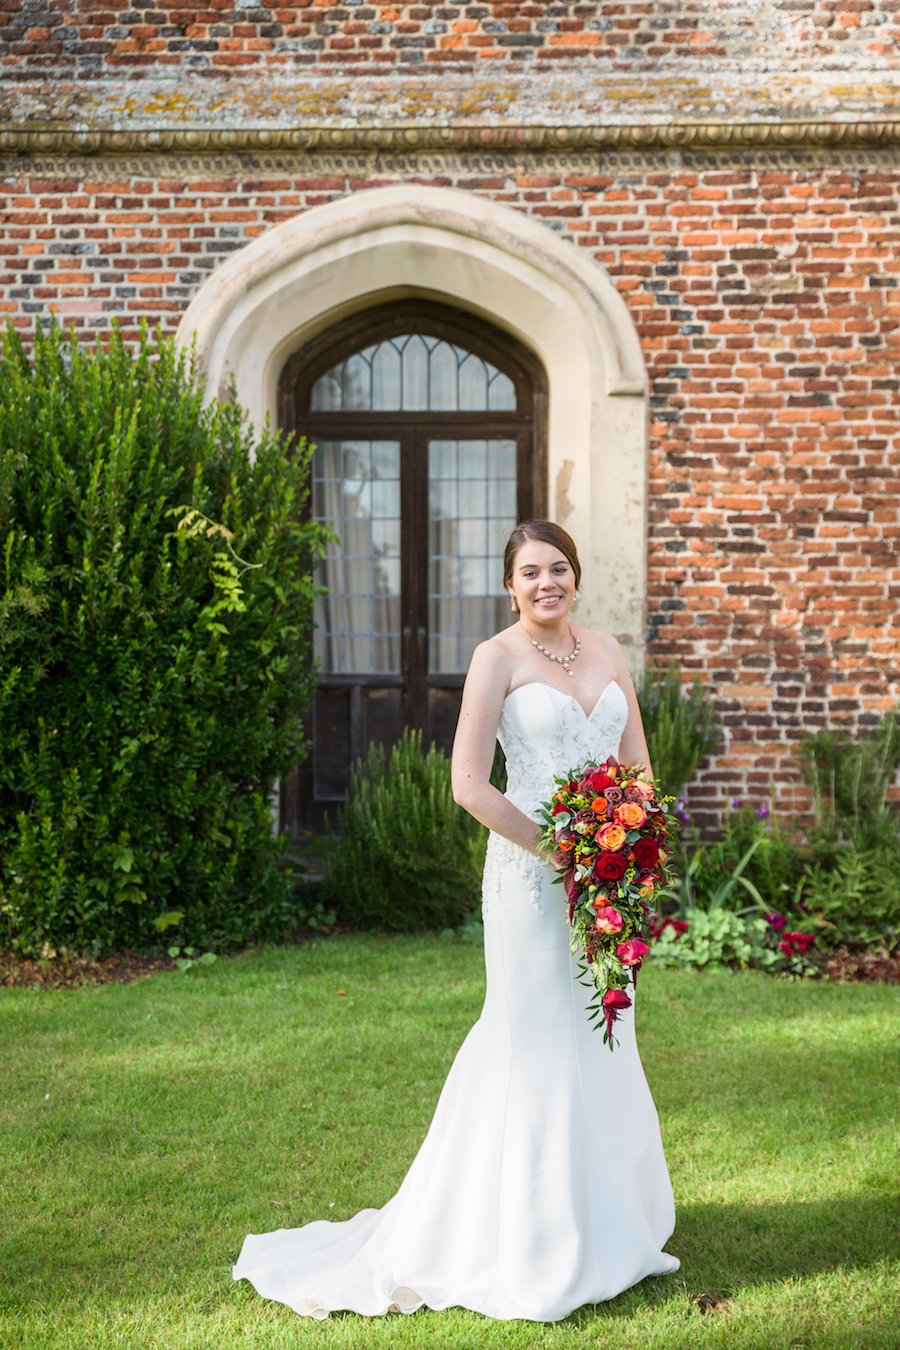 Real wedding by Ayshea Goldberg Photography at Layer Marney Tower (29)